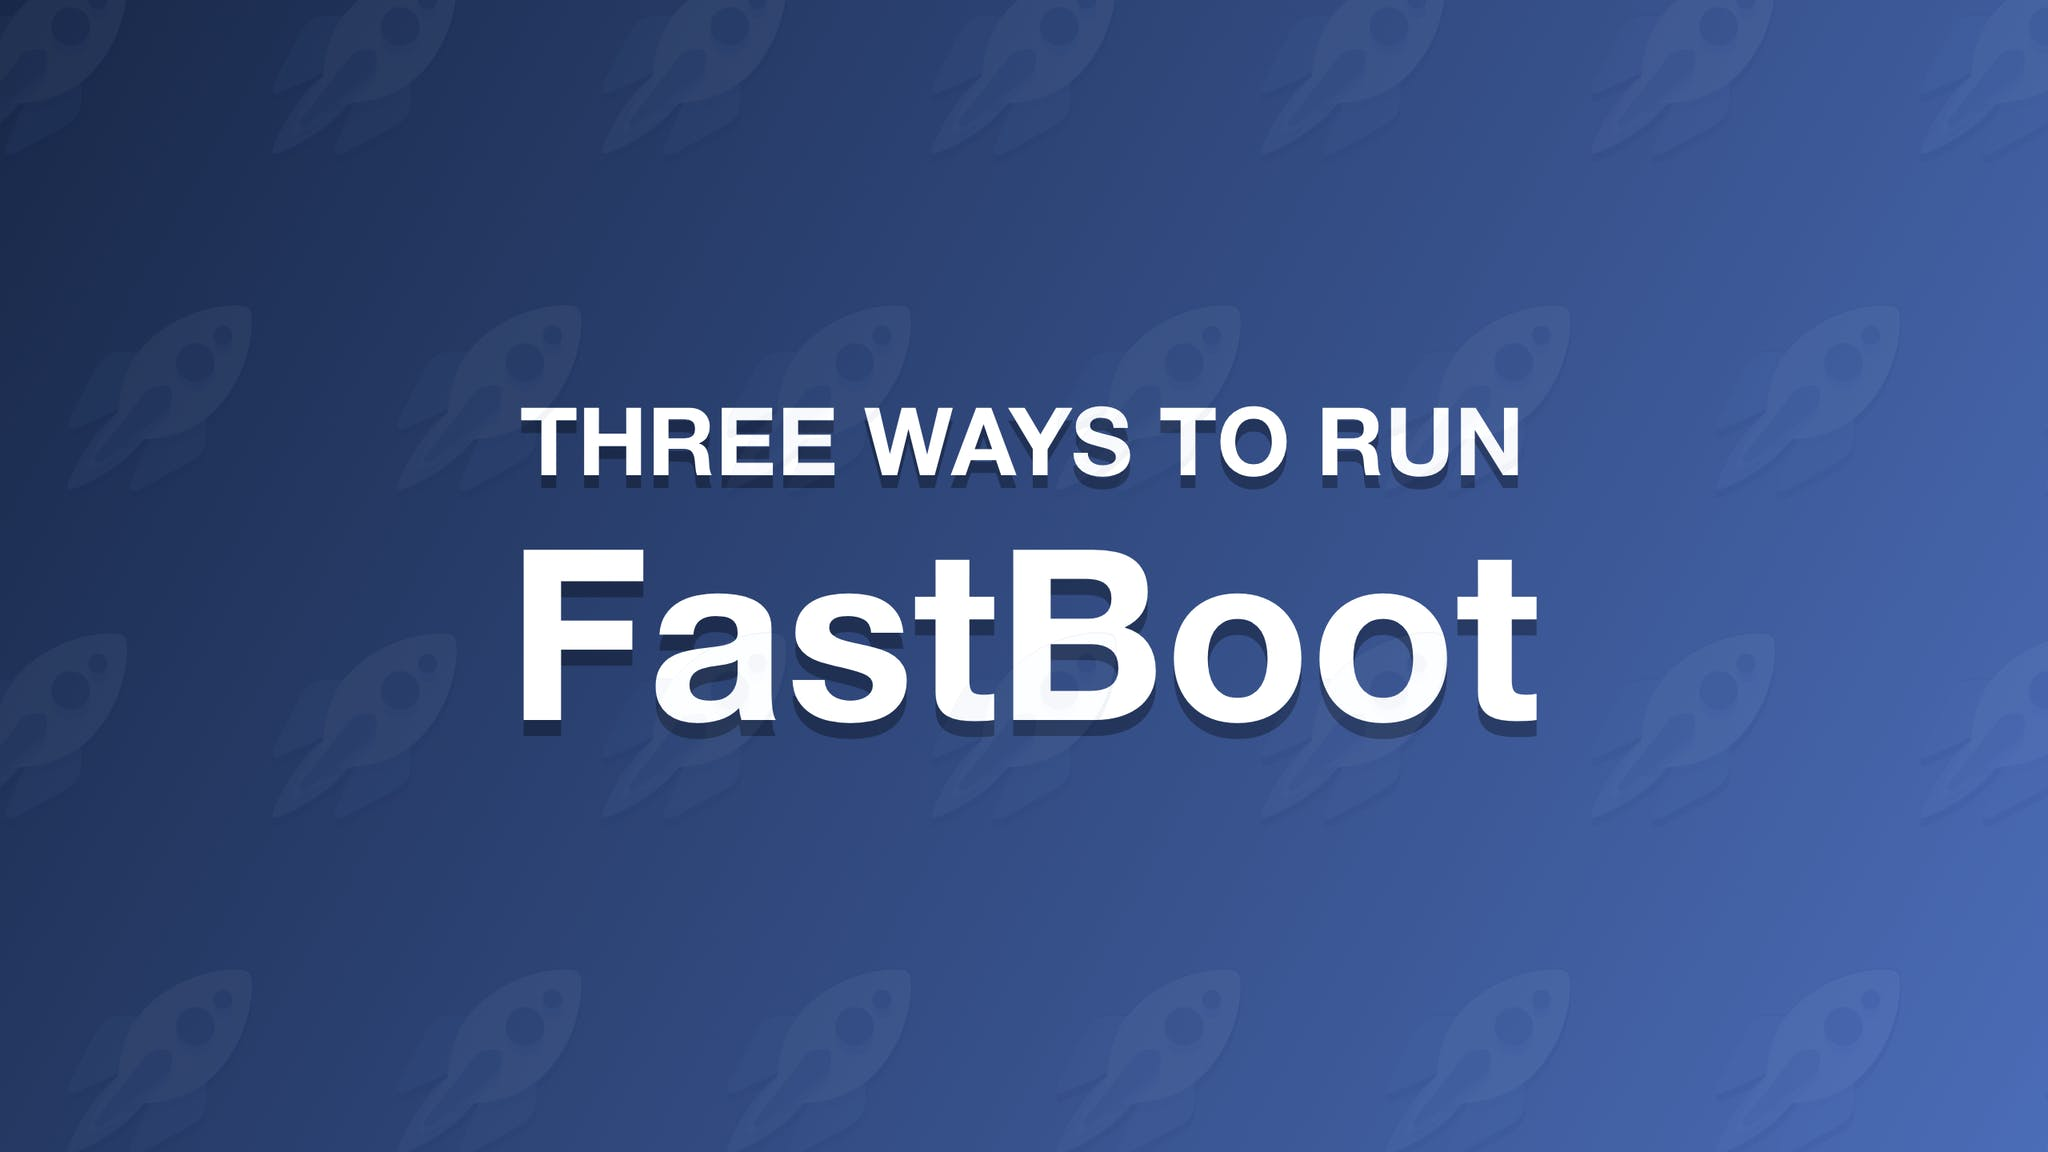 Three ways to run FastBoot